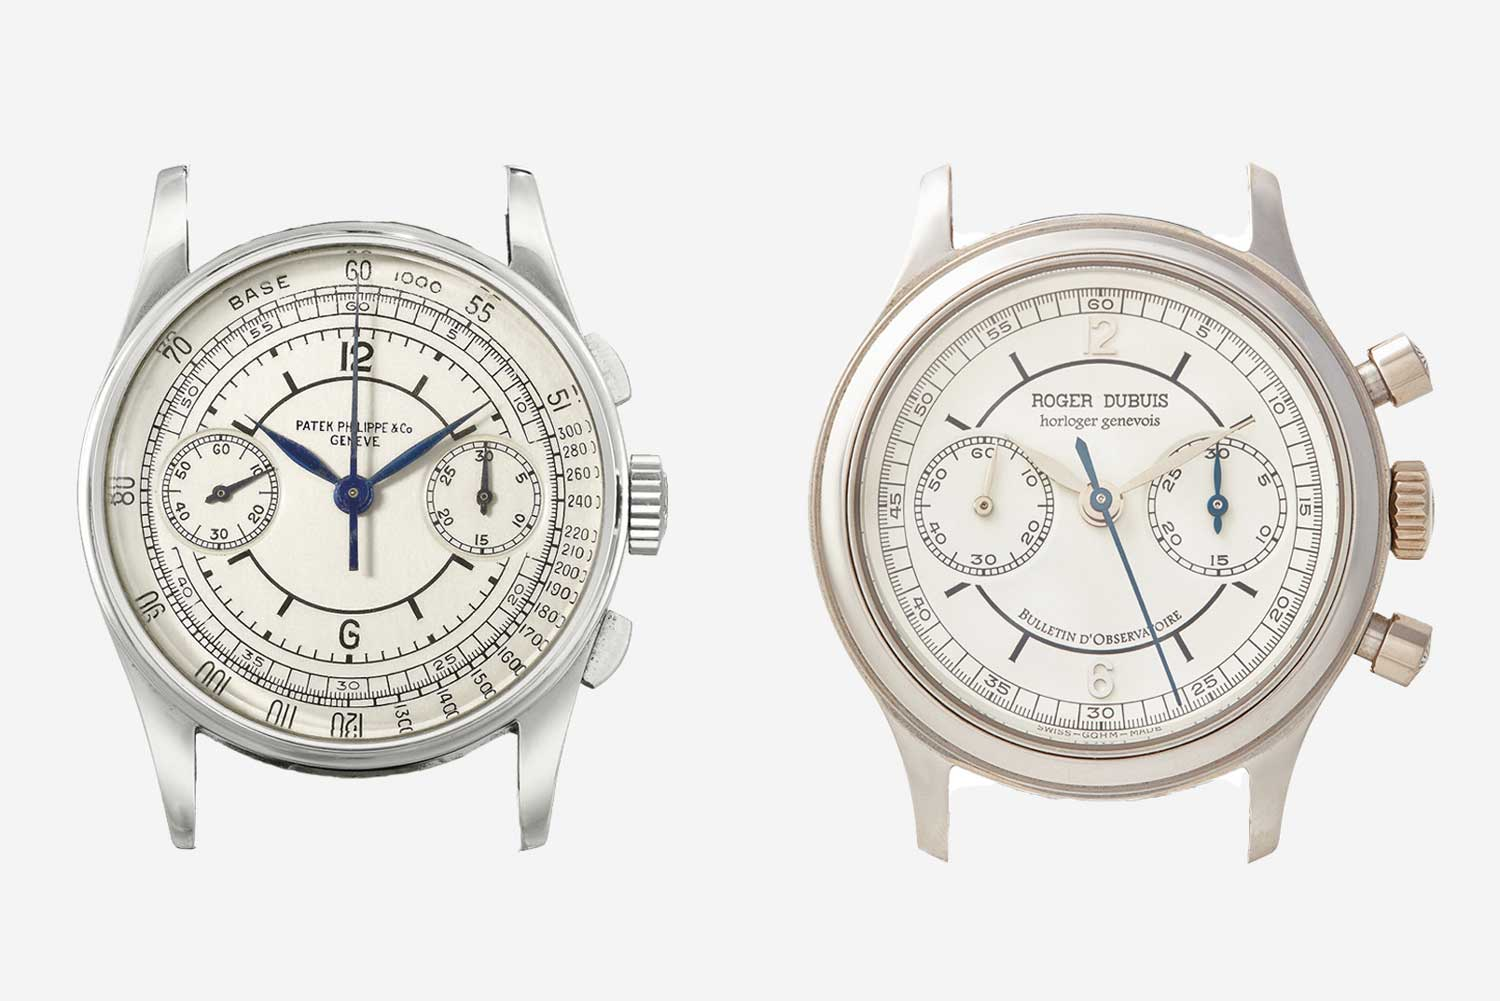 The H34 and H37 came with Sectors or Scientific Dials clearly influenced by the Patek reference 130. There is only one H37 reference from 1998 that does not use a Sector dial and has Roman numerals and sword hands.